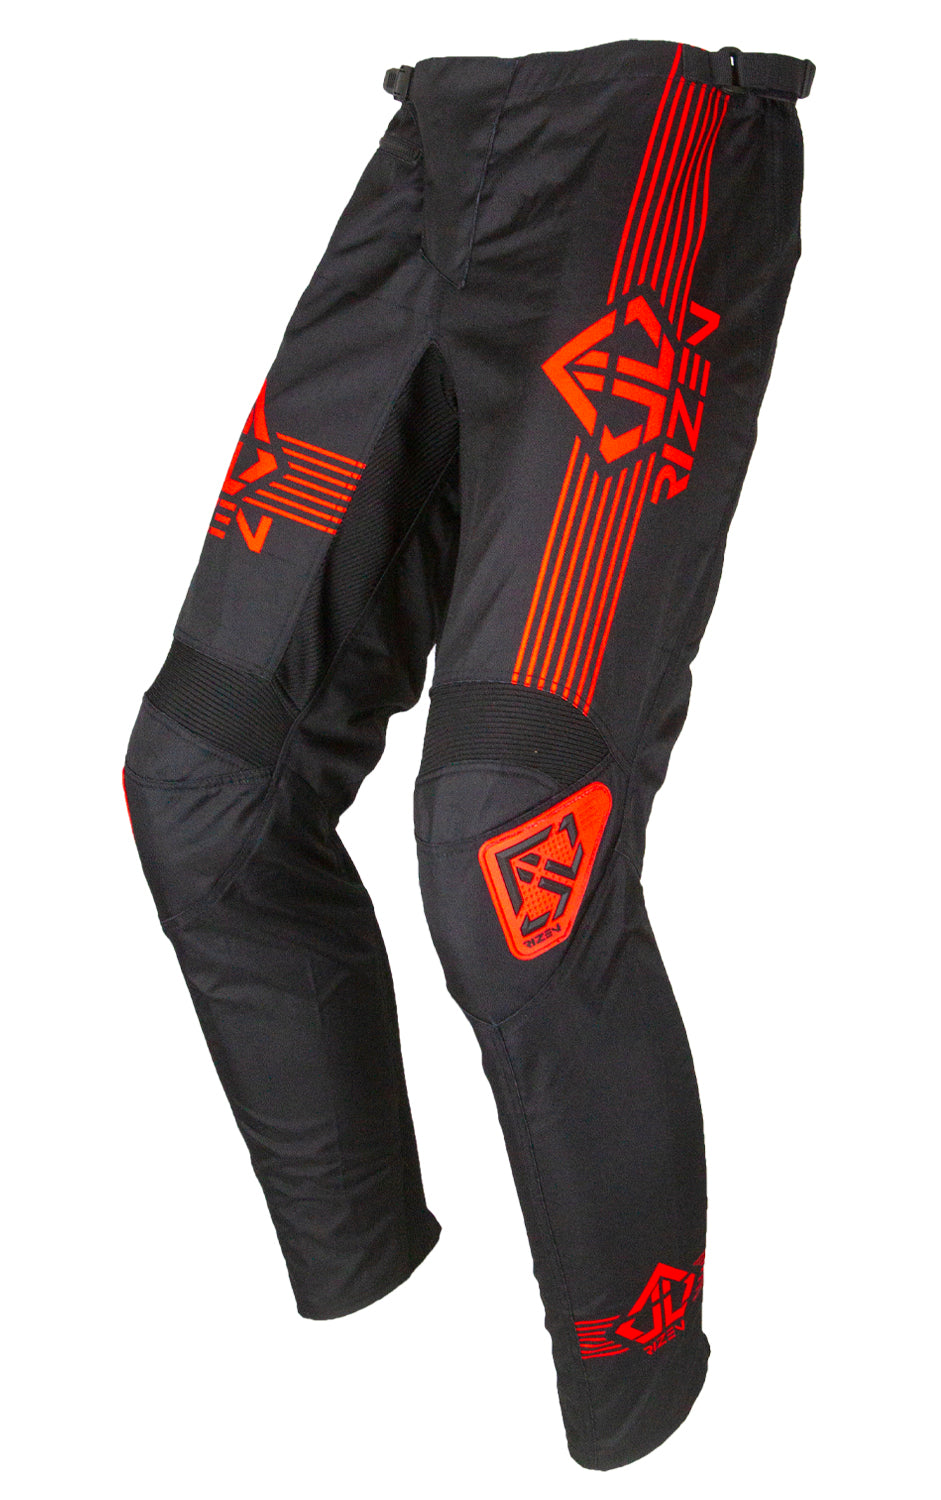 PHAZE 1 PANTS - BICYCLE - BLACK/RED